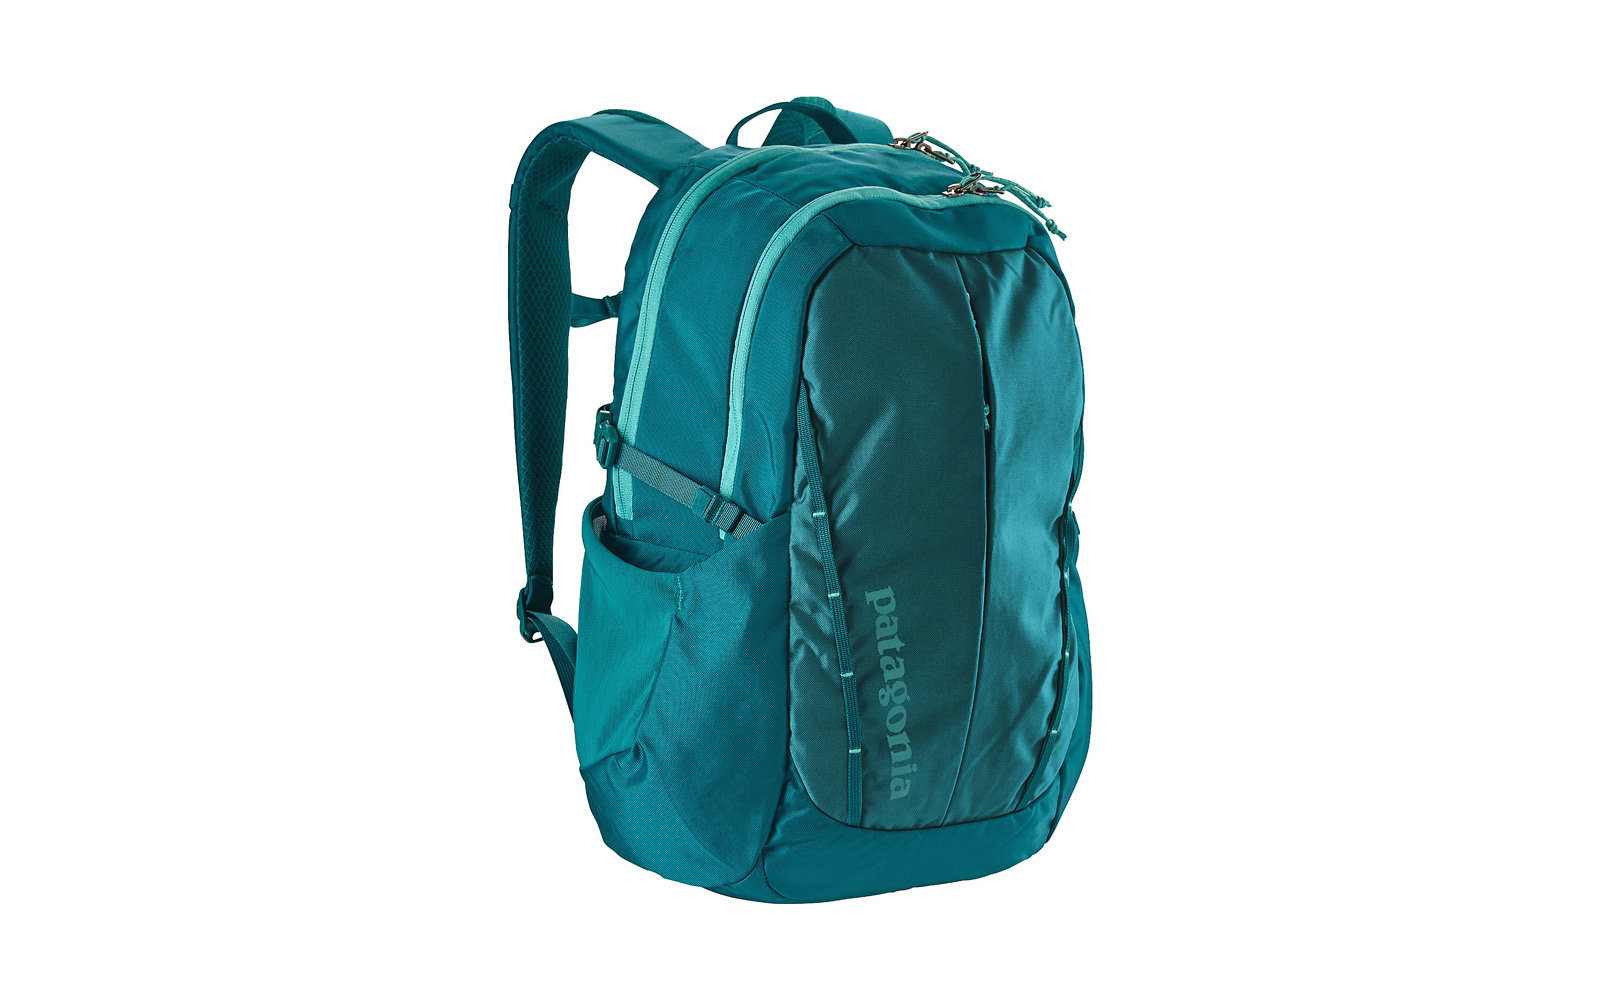 The Best Daypacks for Travel in 2019  2adc9cb437d66